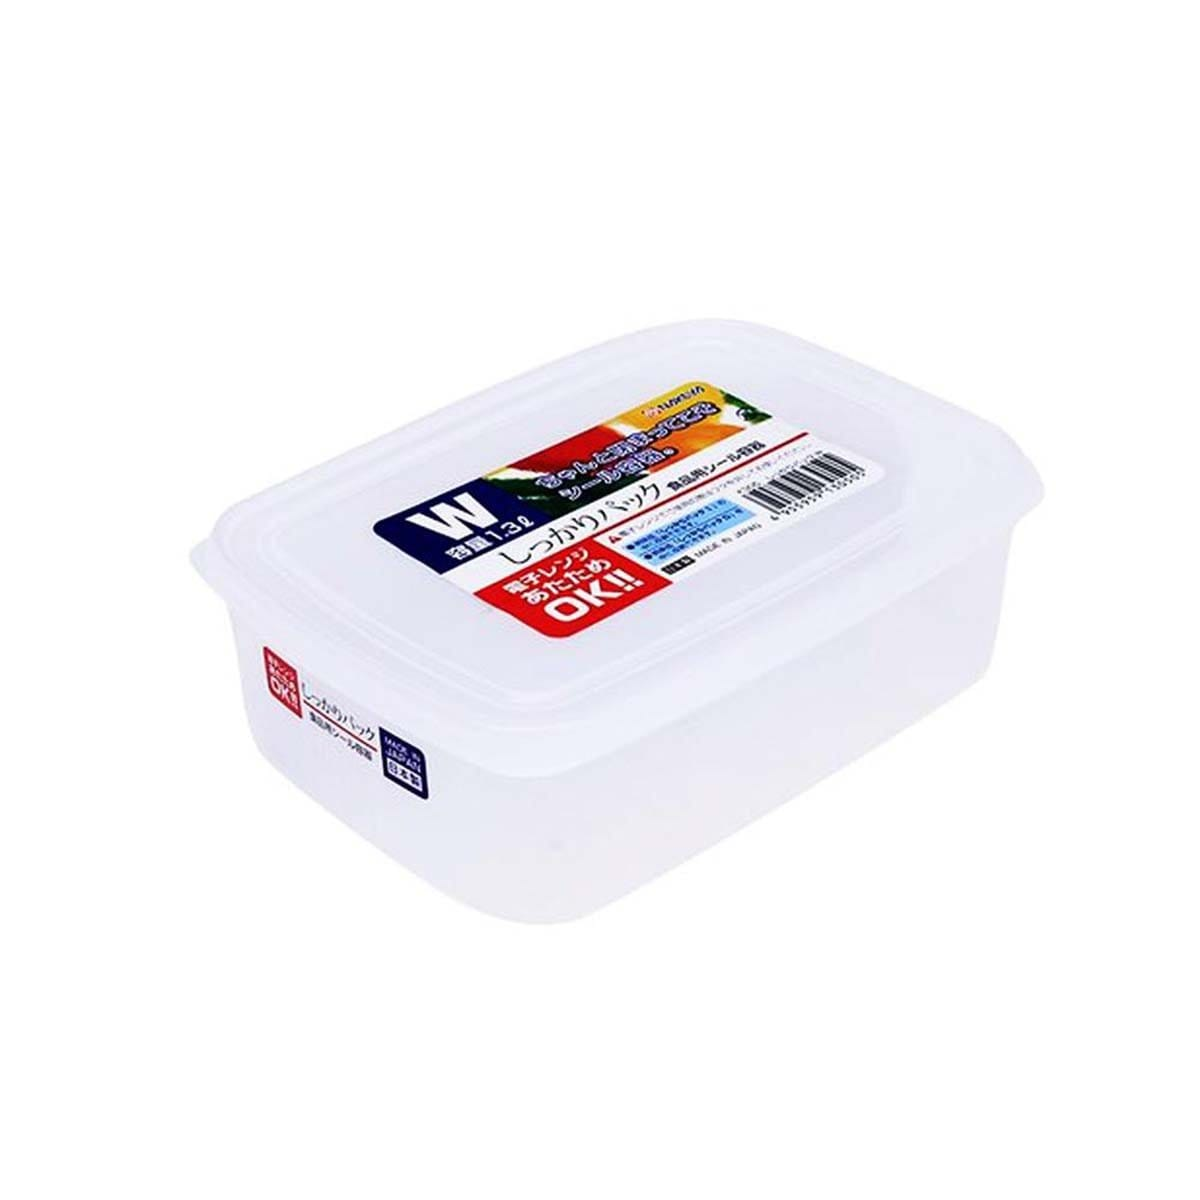 Japanese Plastic Measuring Food Container Pack White K305 (1.3L)